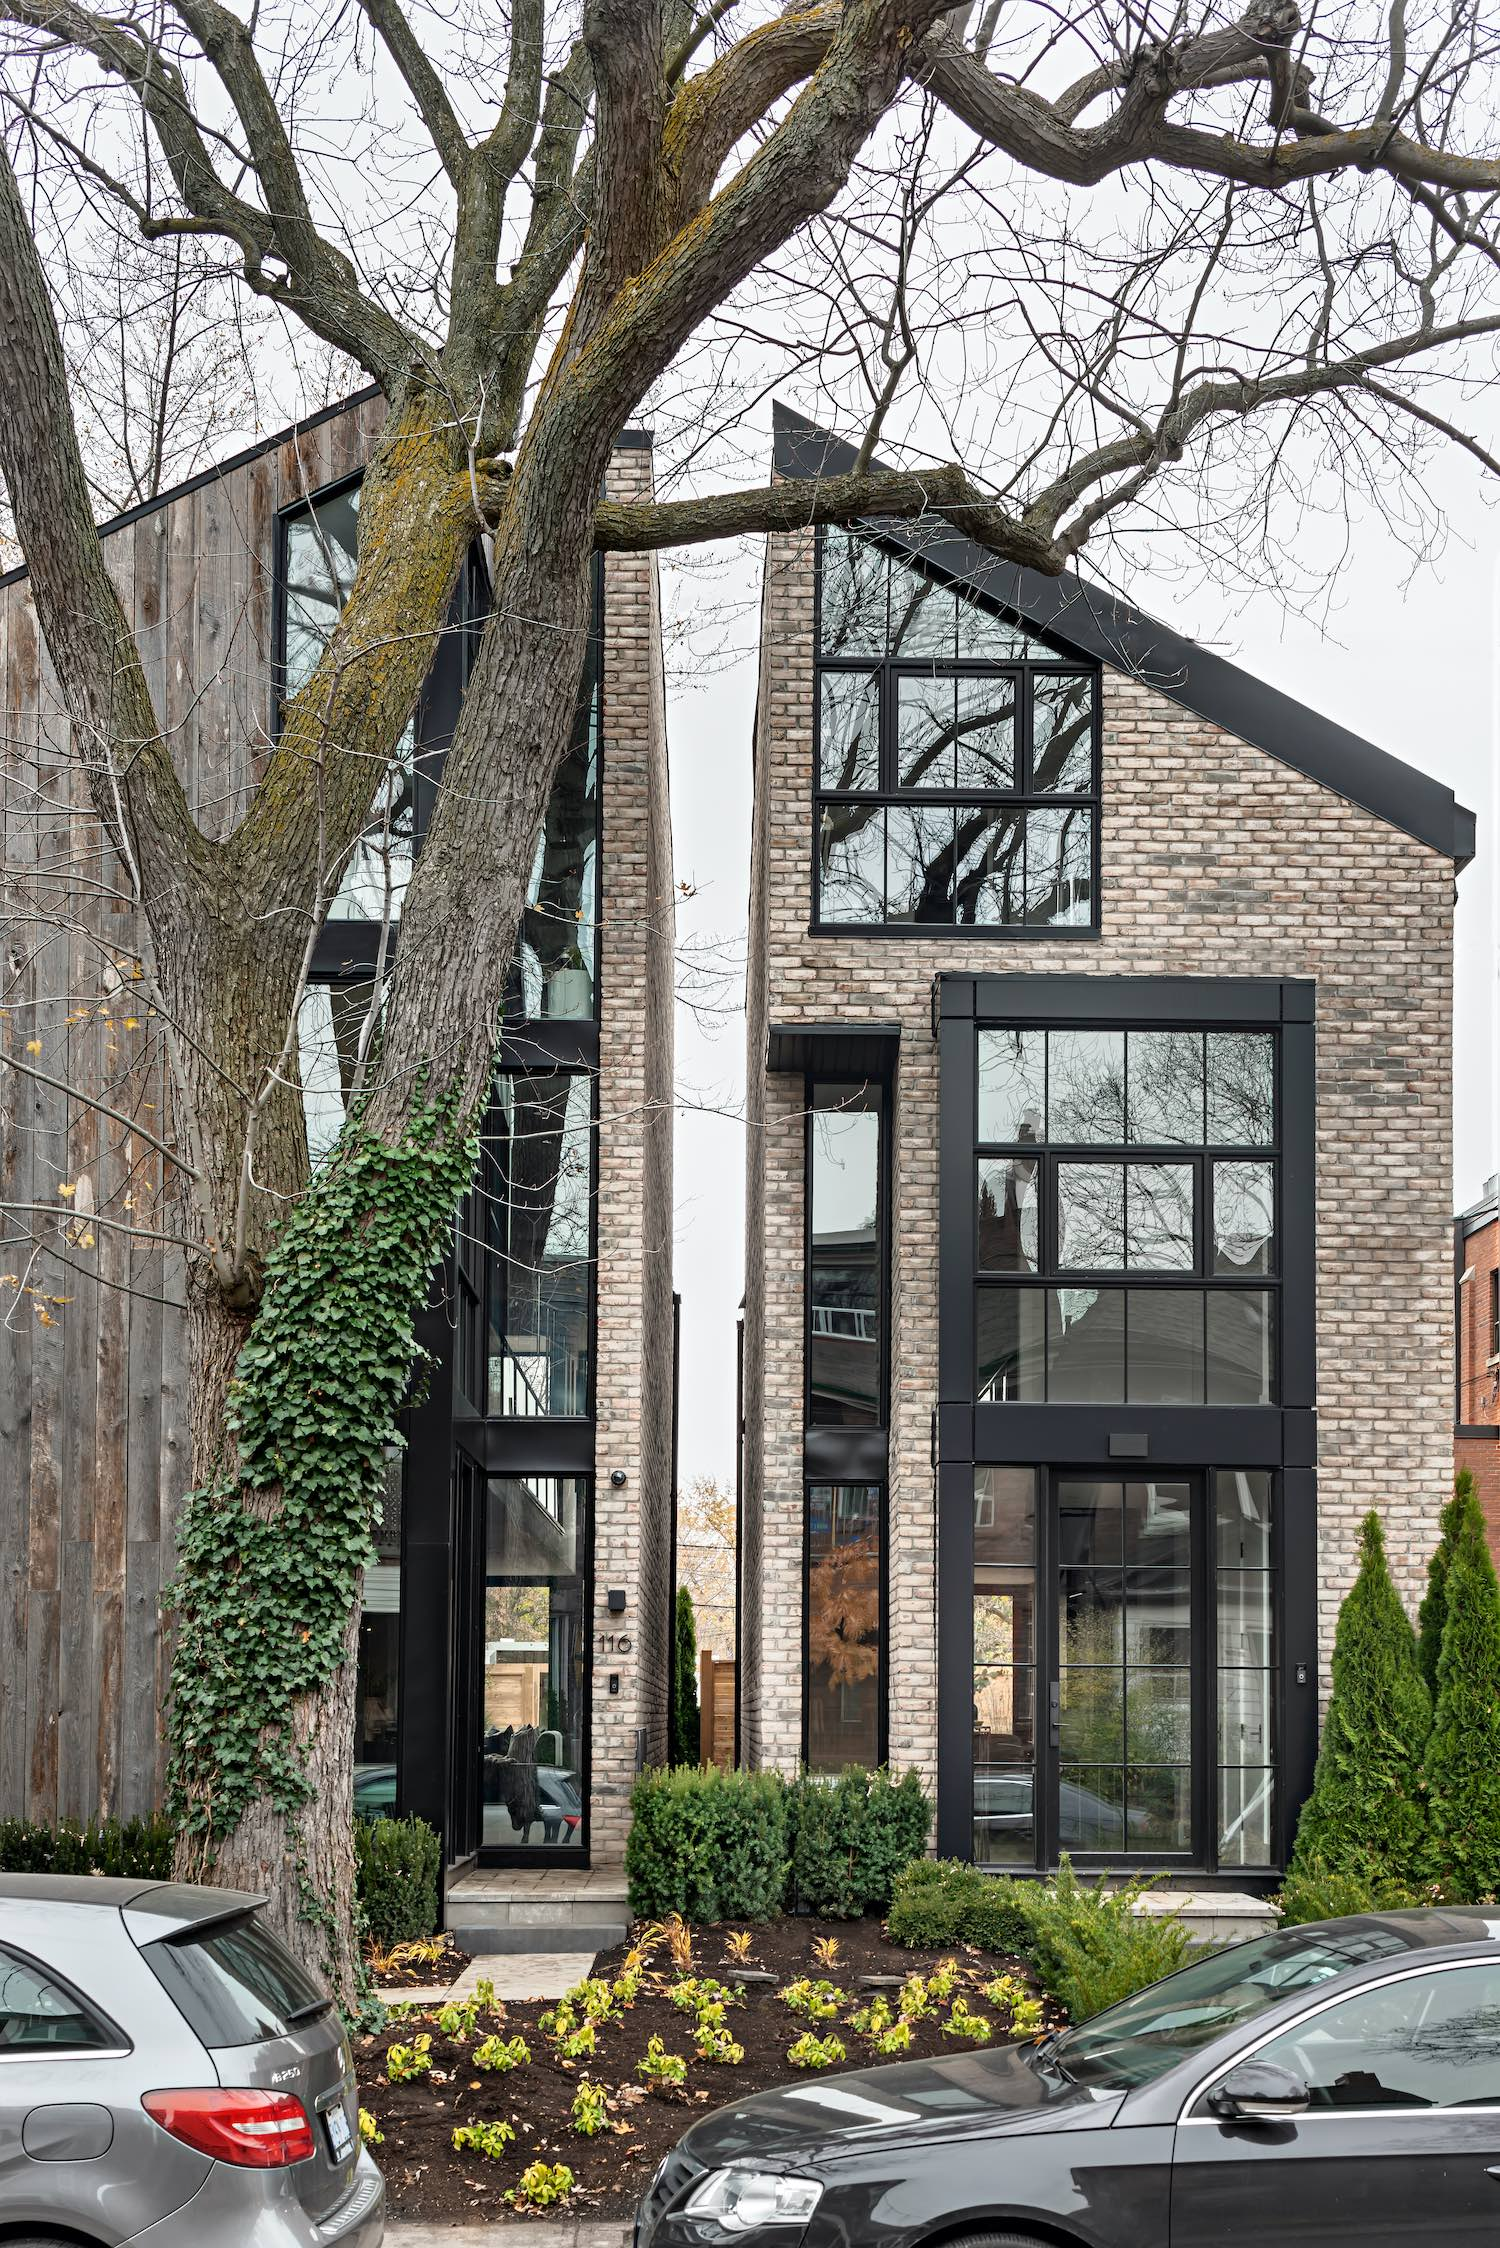 semi detached house with brick facade and a big tree in front